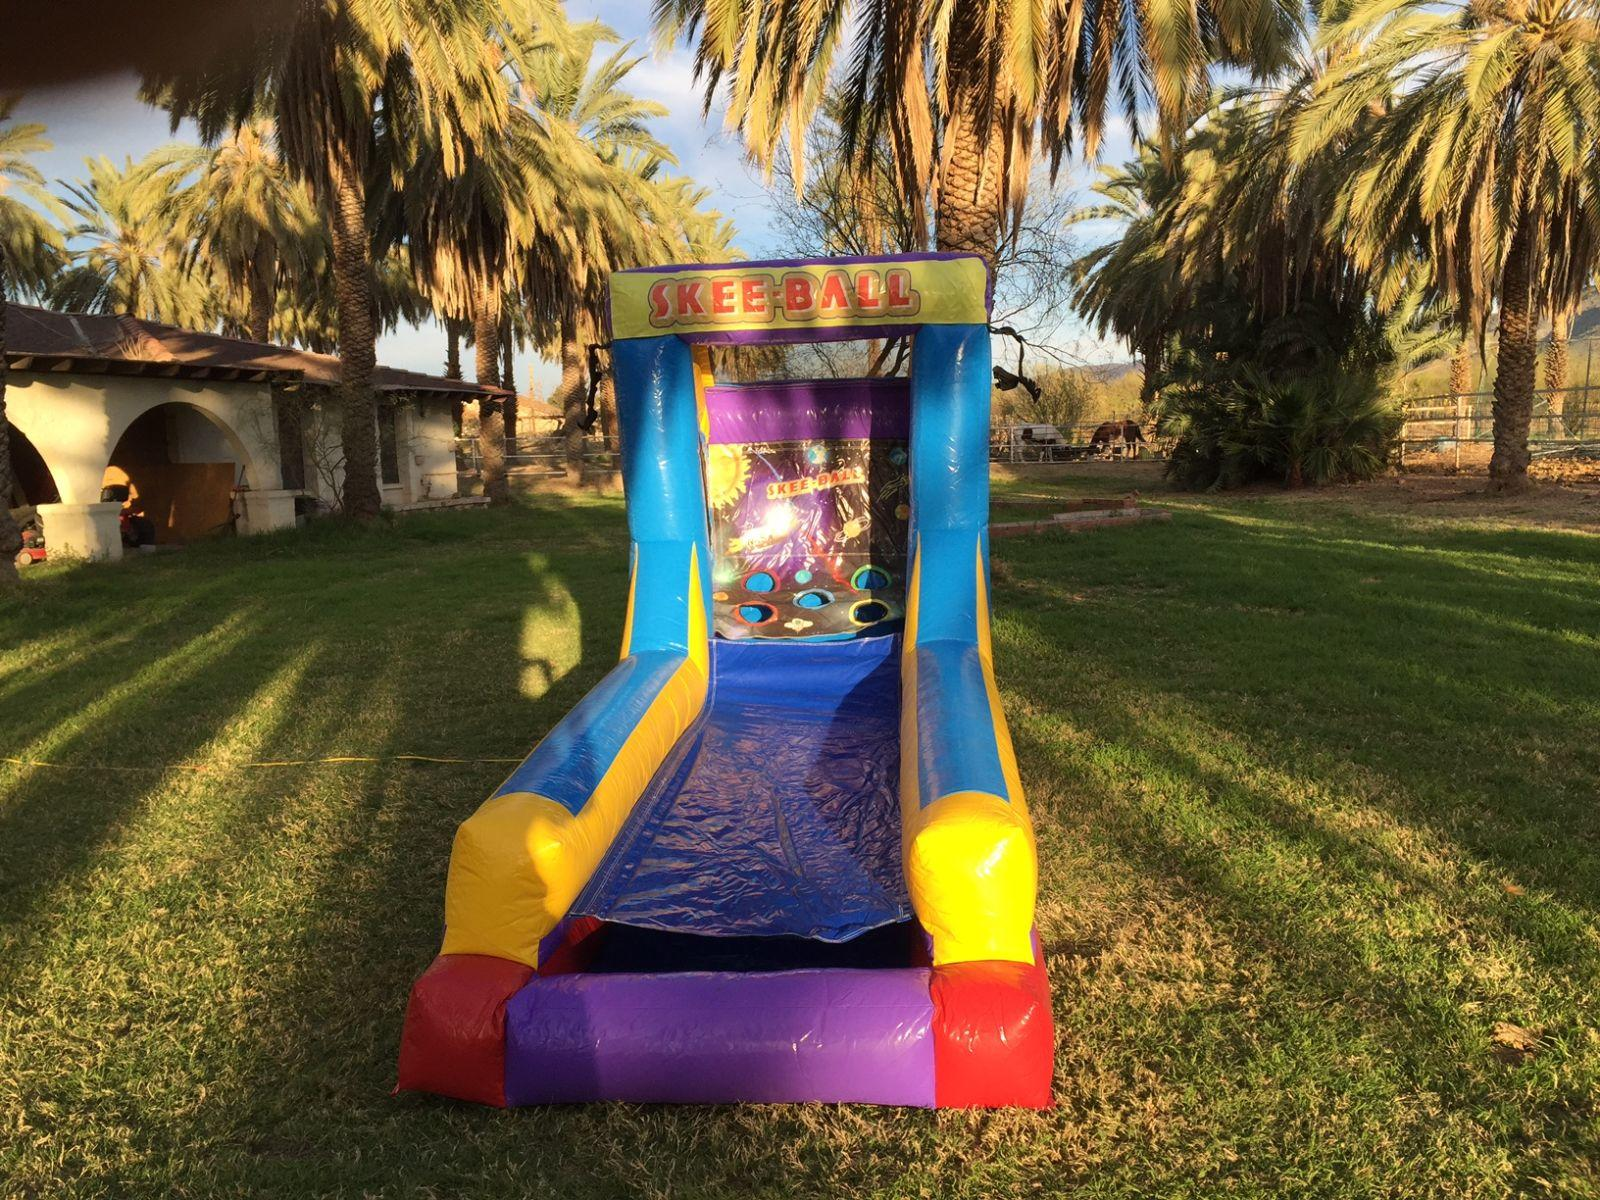 Portable Skee Ball Game Rental Arizona